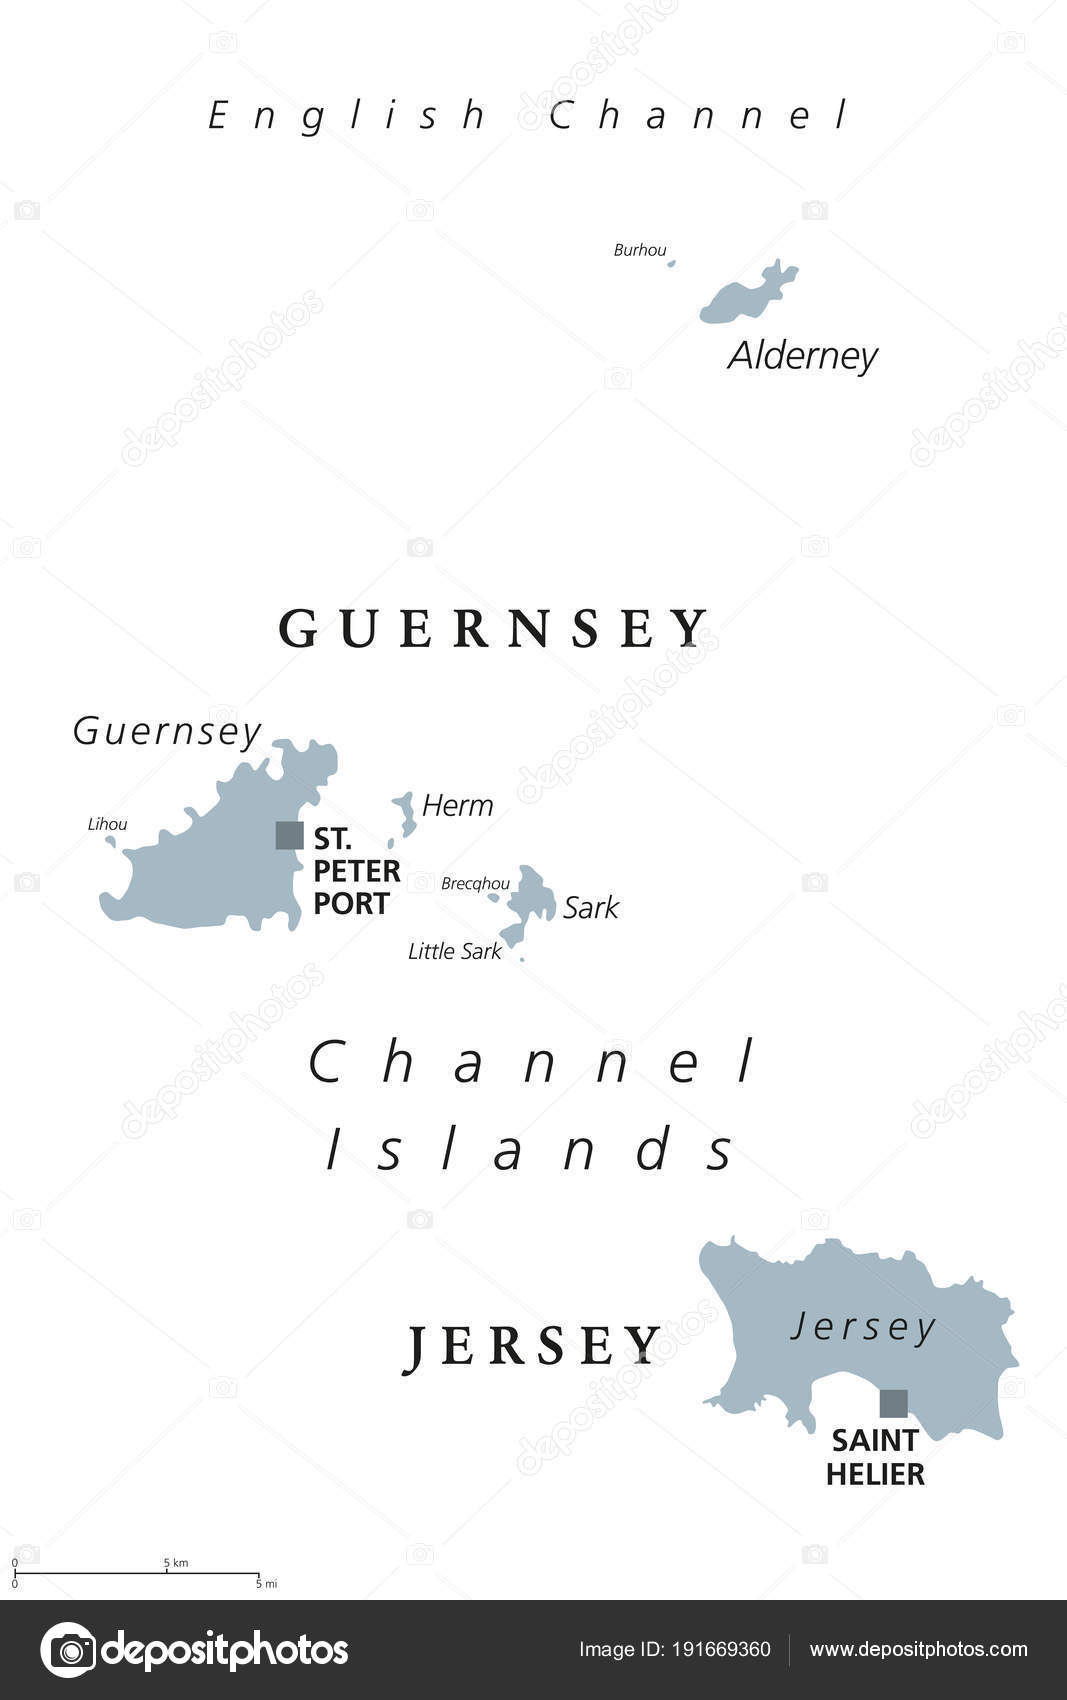 Guernsey and Jersey Channel Islands gray political map Stock